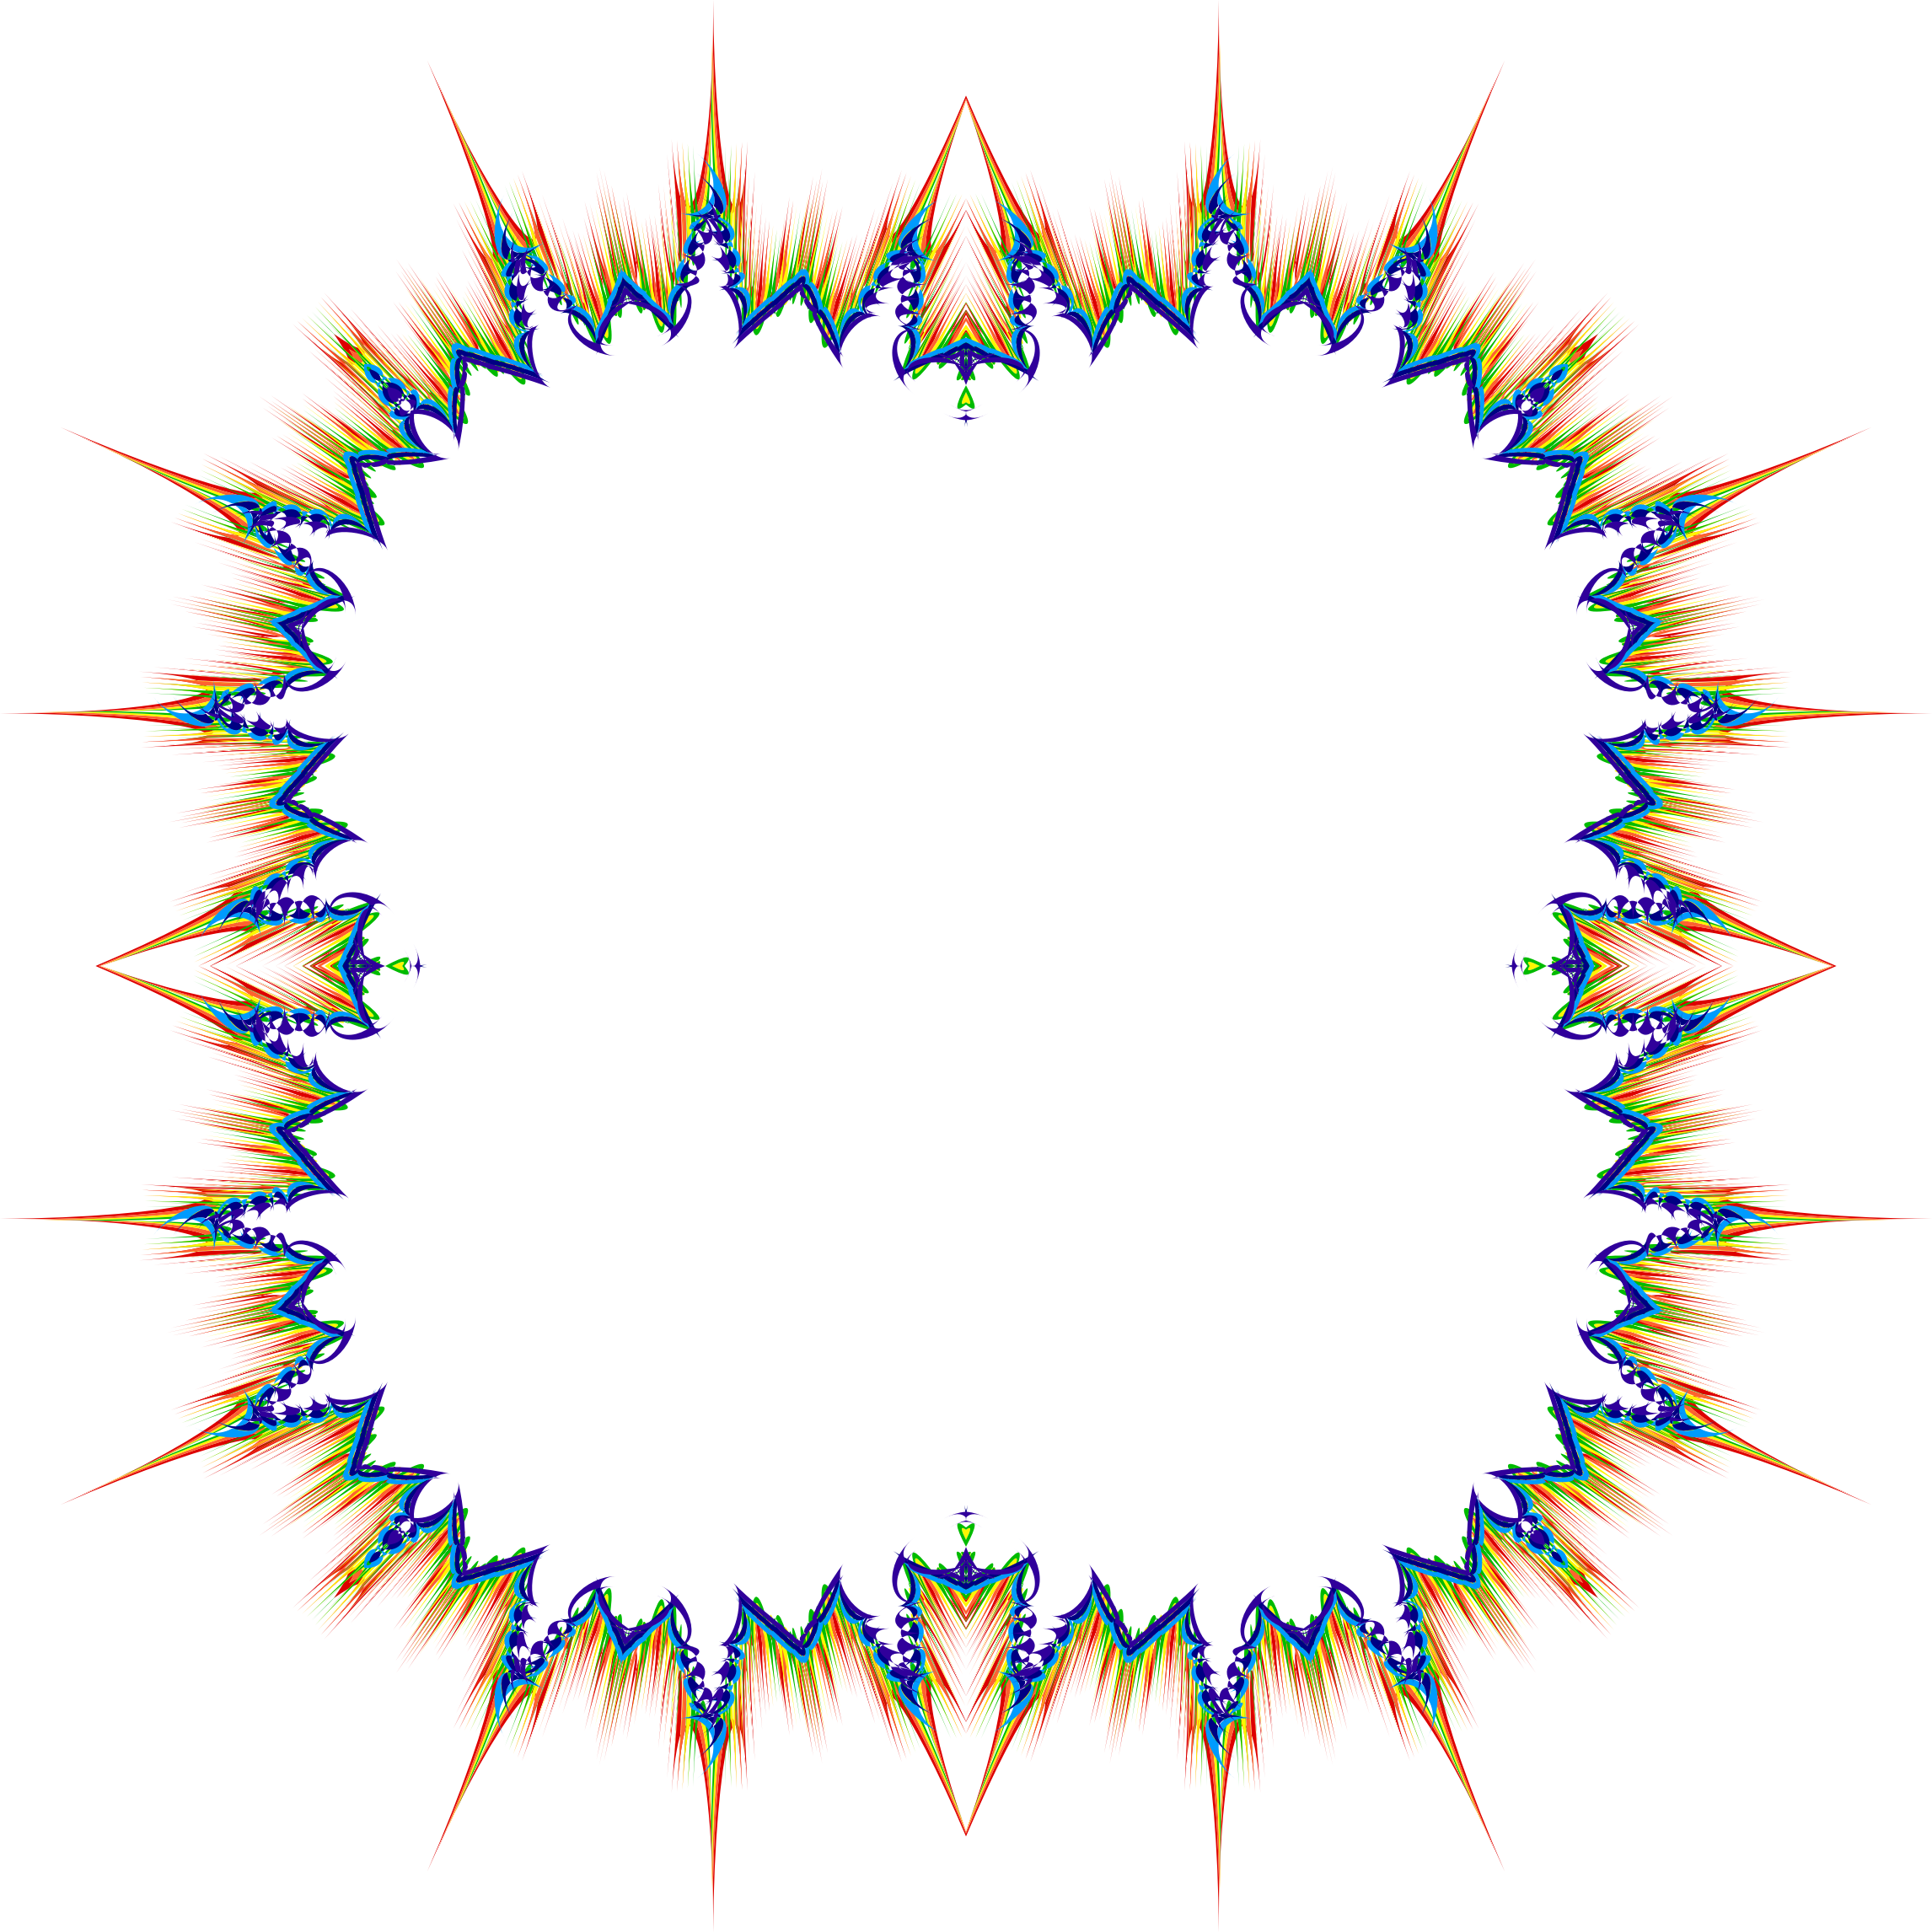 Hurricane clipart abstract. Geometric frame png picture